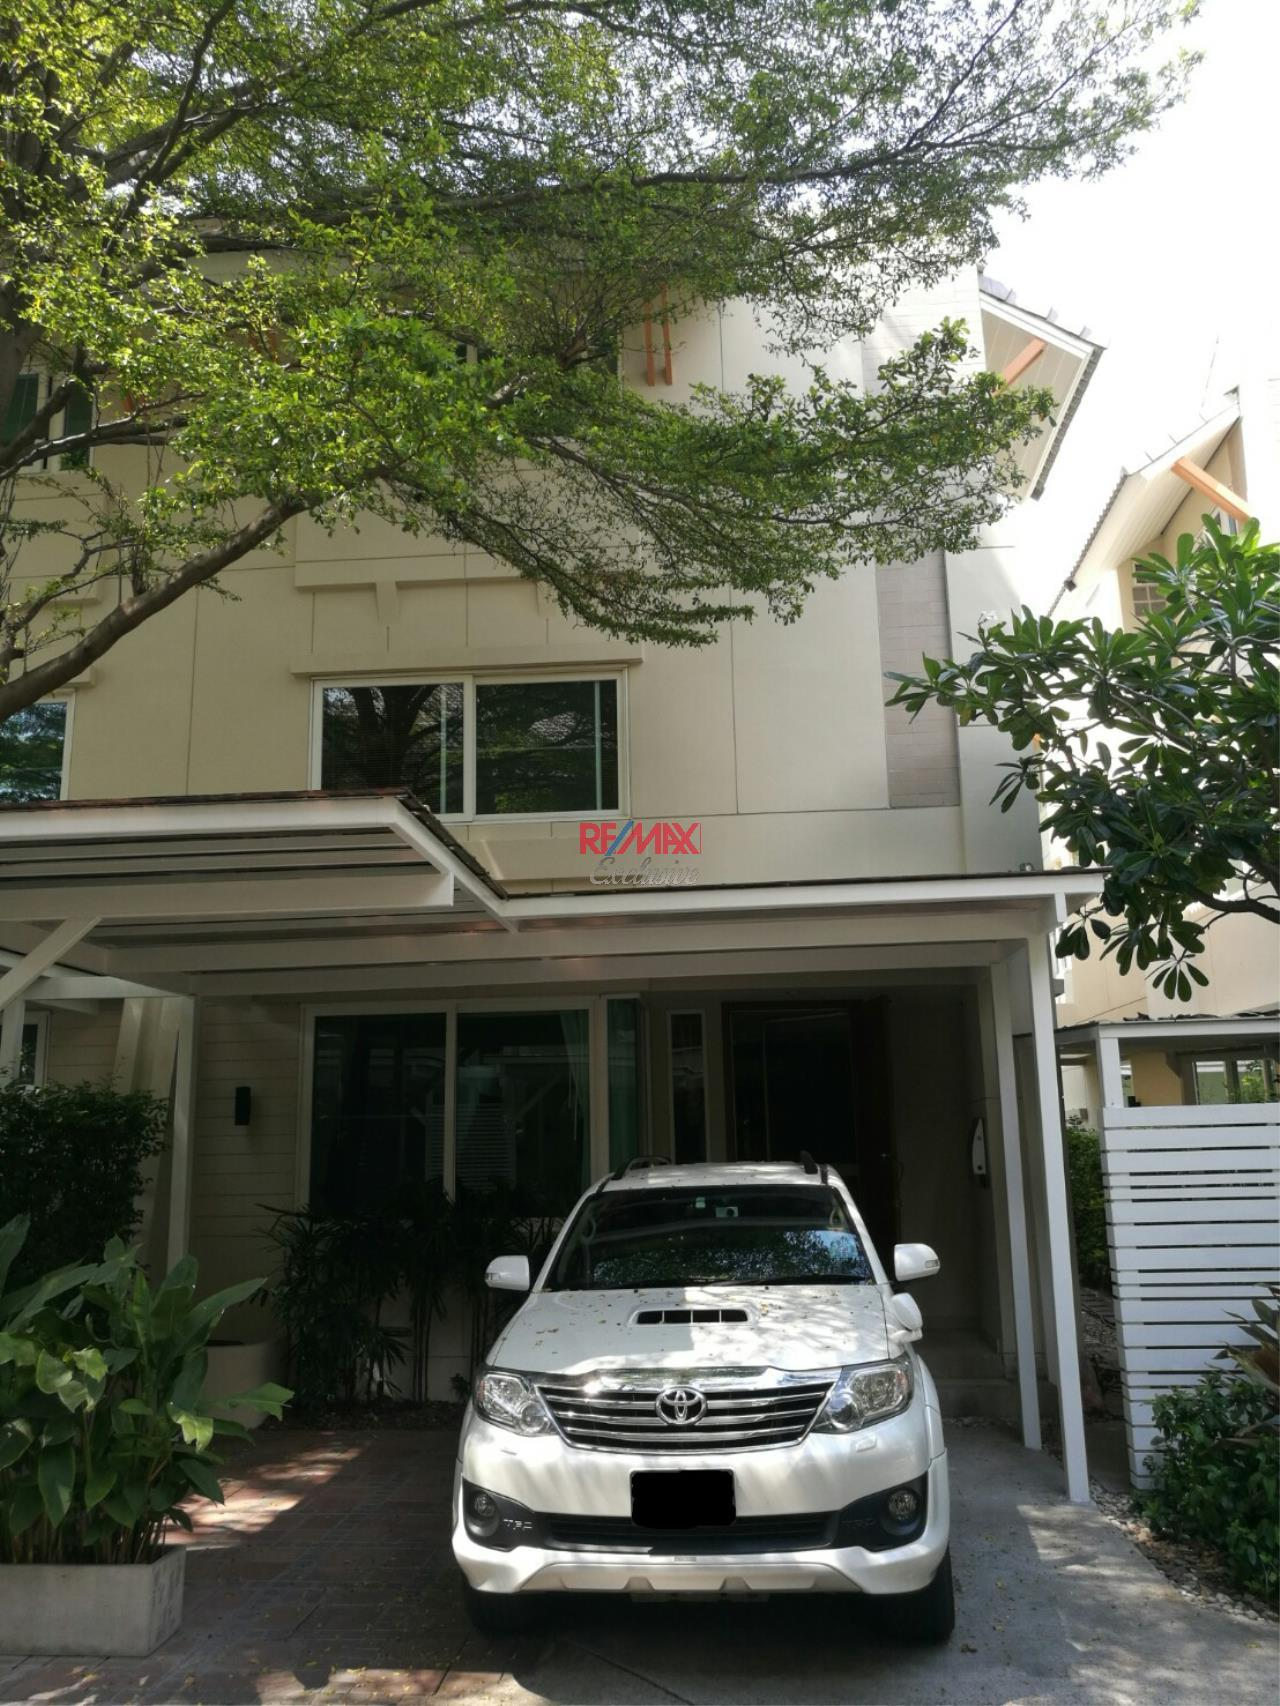 RE/MAX Exclusive Agency's Compound house, 300 sqm, 4 +1 bedrooms for rent in Ekkamai 22 2